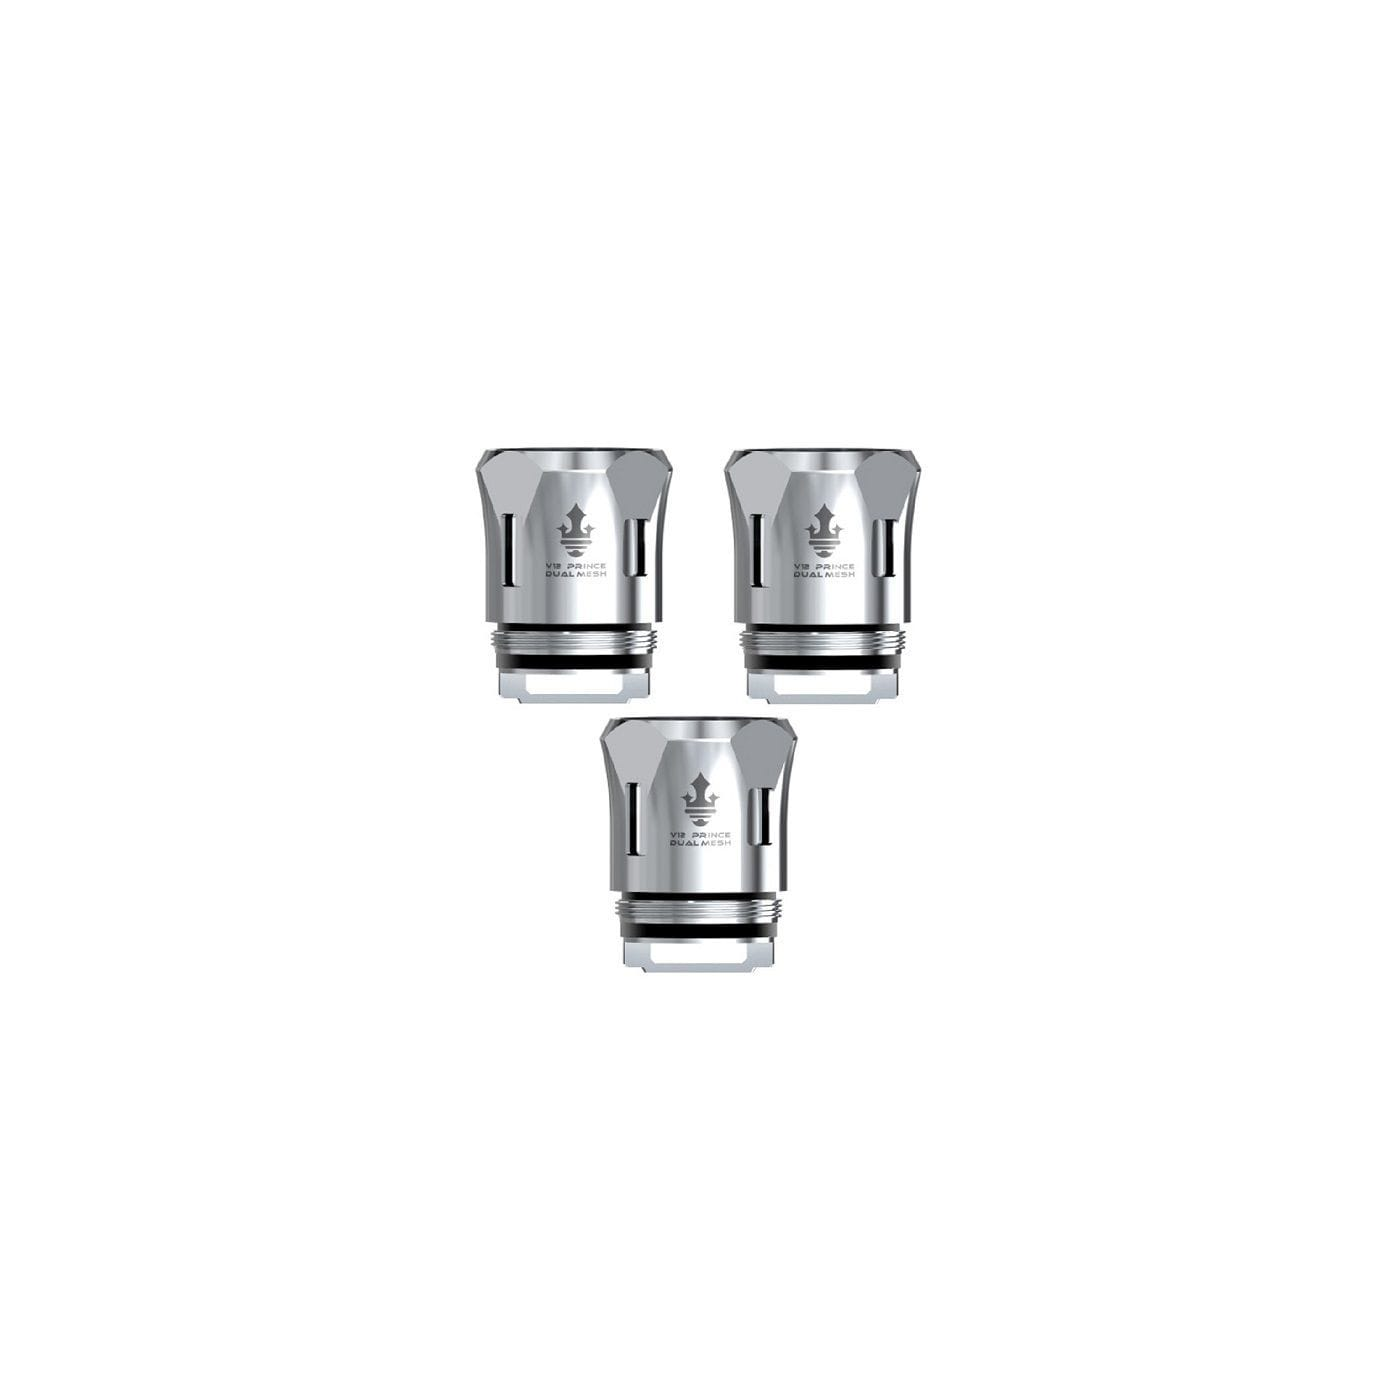 Smok TFV12 Prince Dual Mesh Replacement Coil - 3 Pack